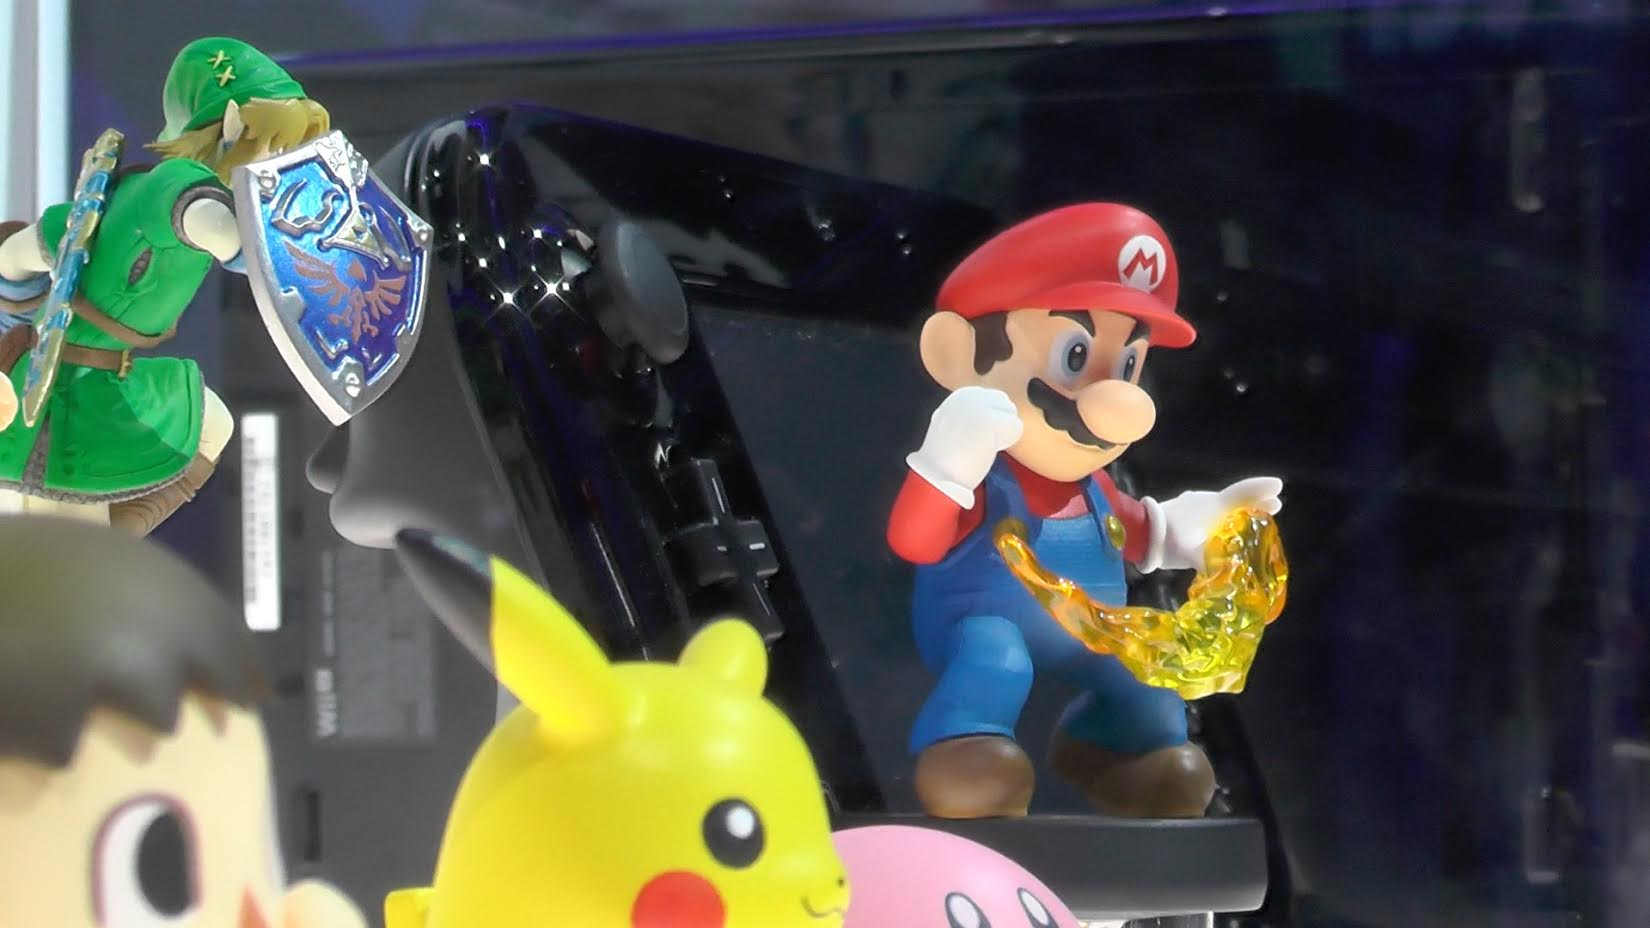 Take a look at Nintendo's Amiibo figures